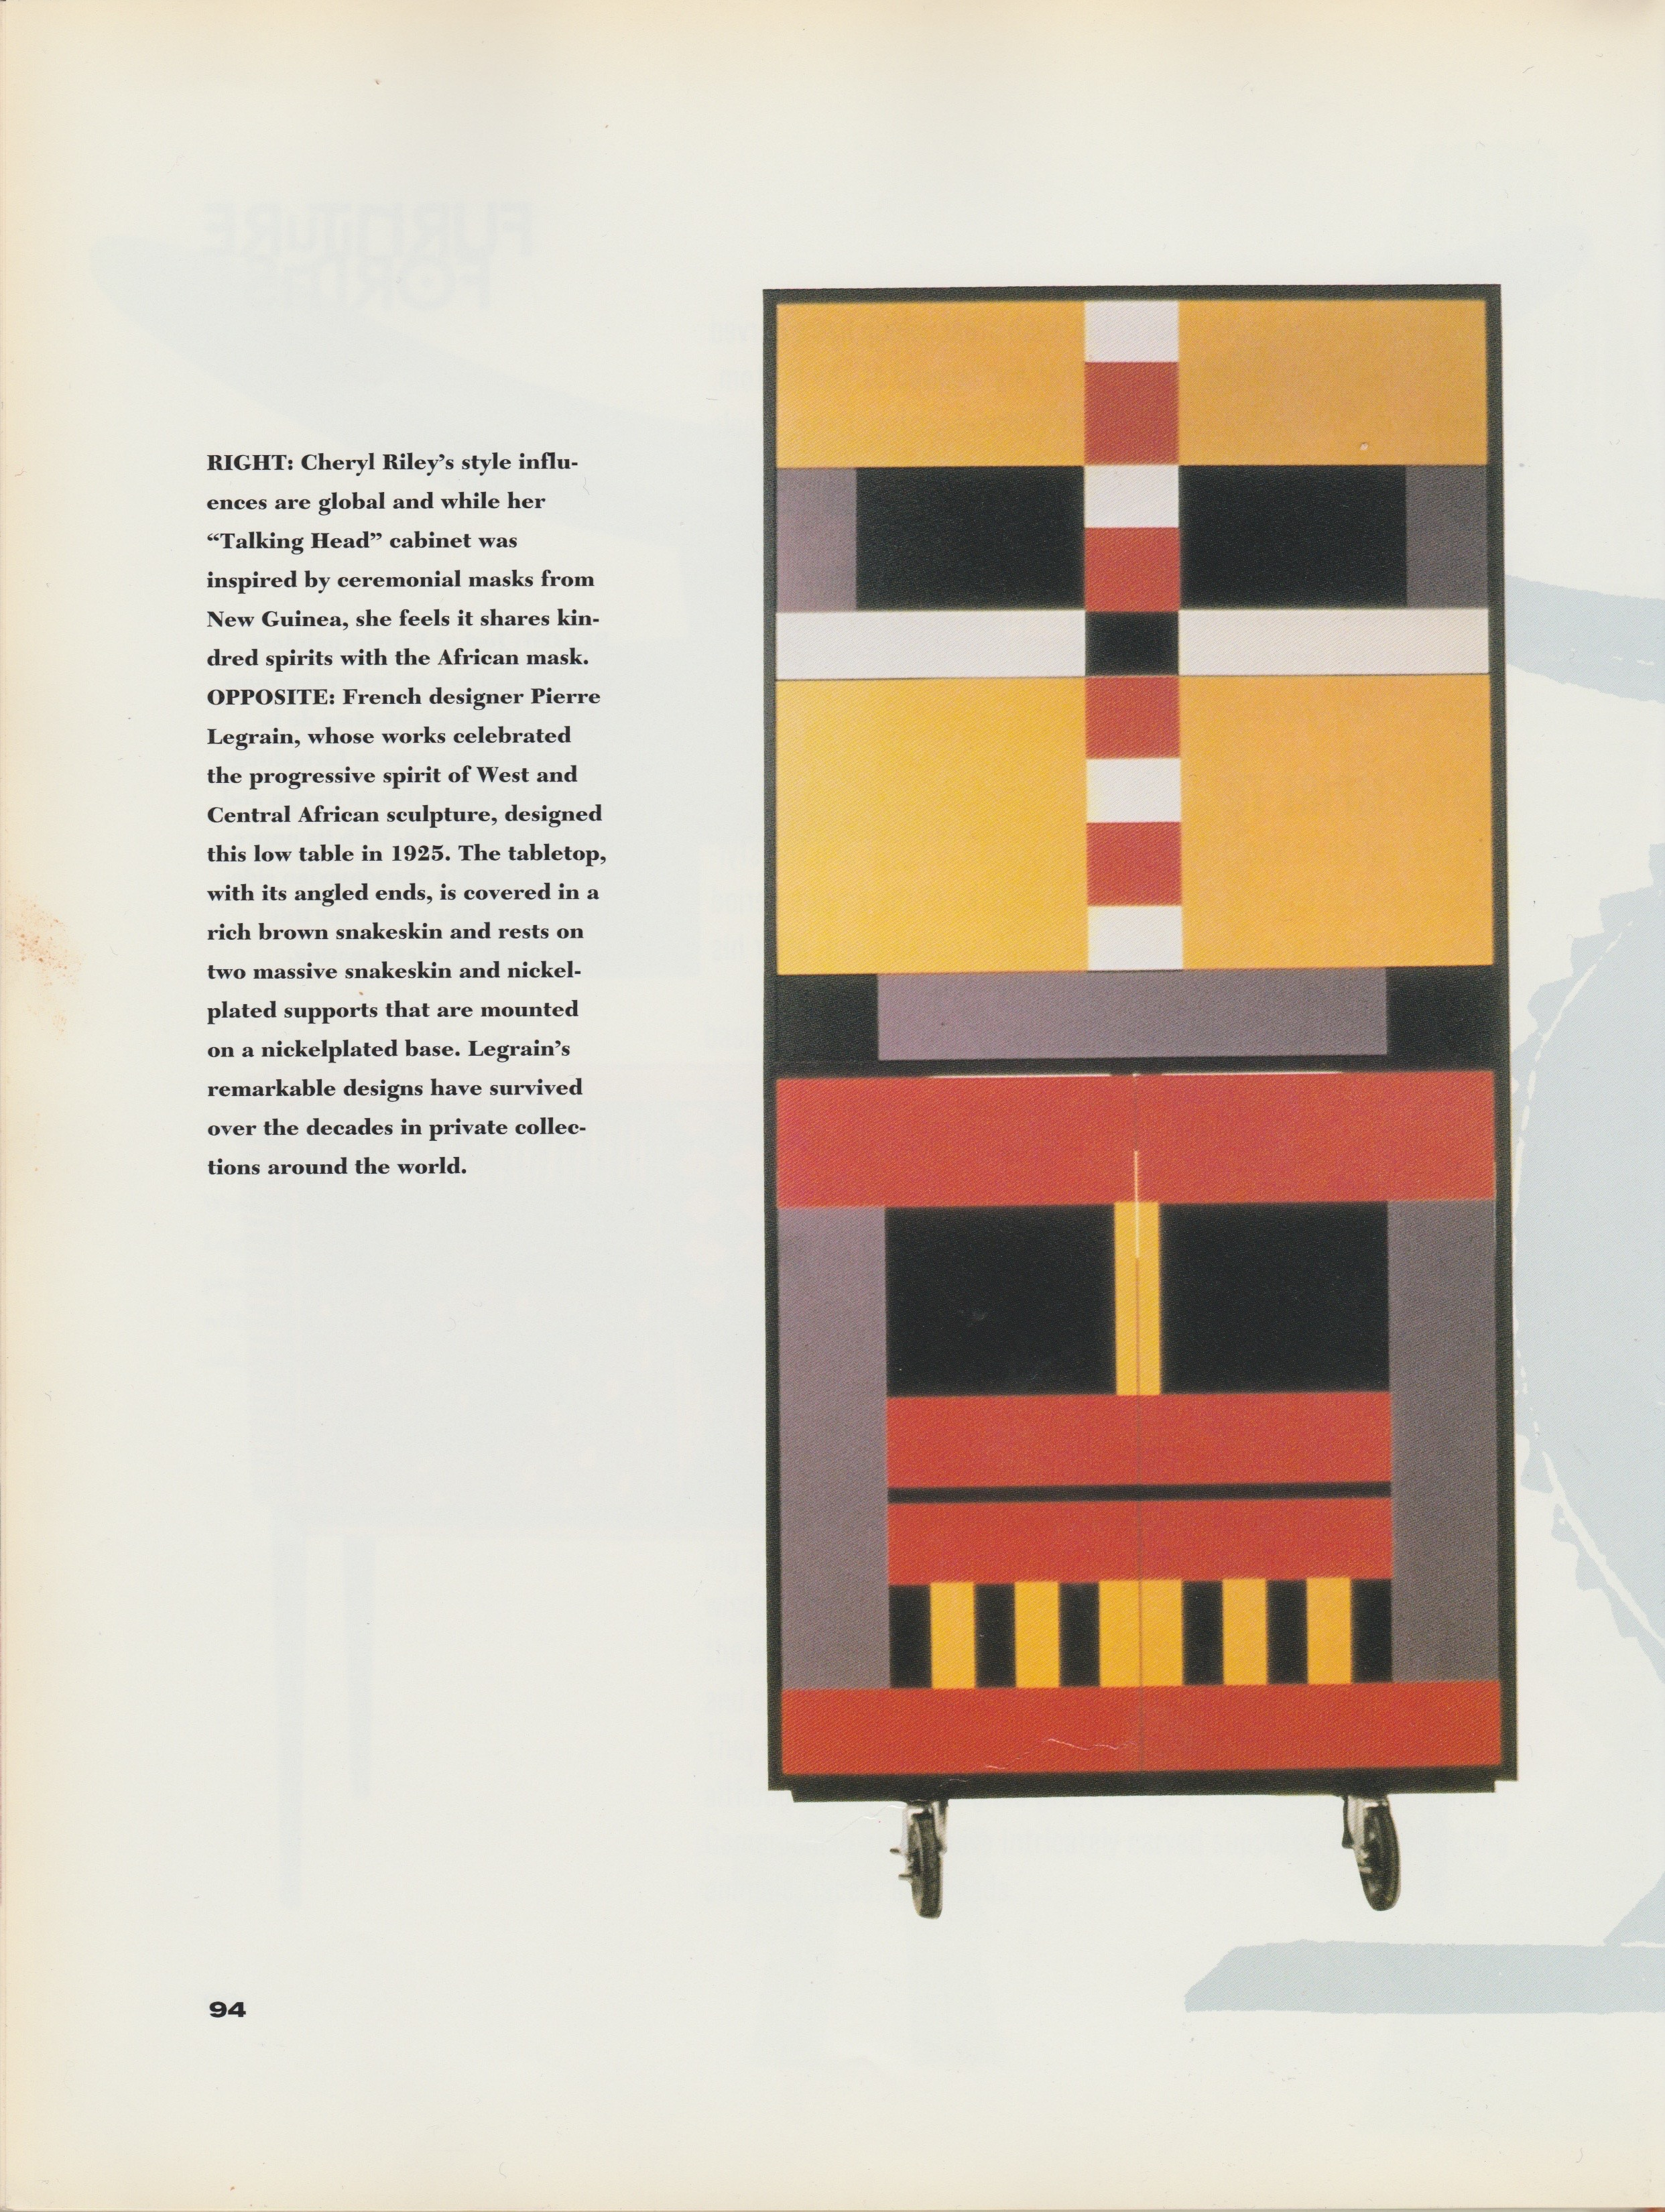 THE SPIRIT OF AFRICAN DESIGN-Talkiing Head media cabinet.jpg